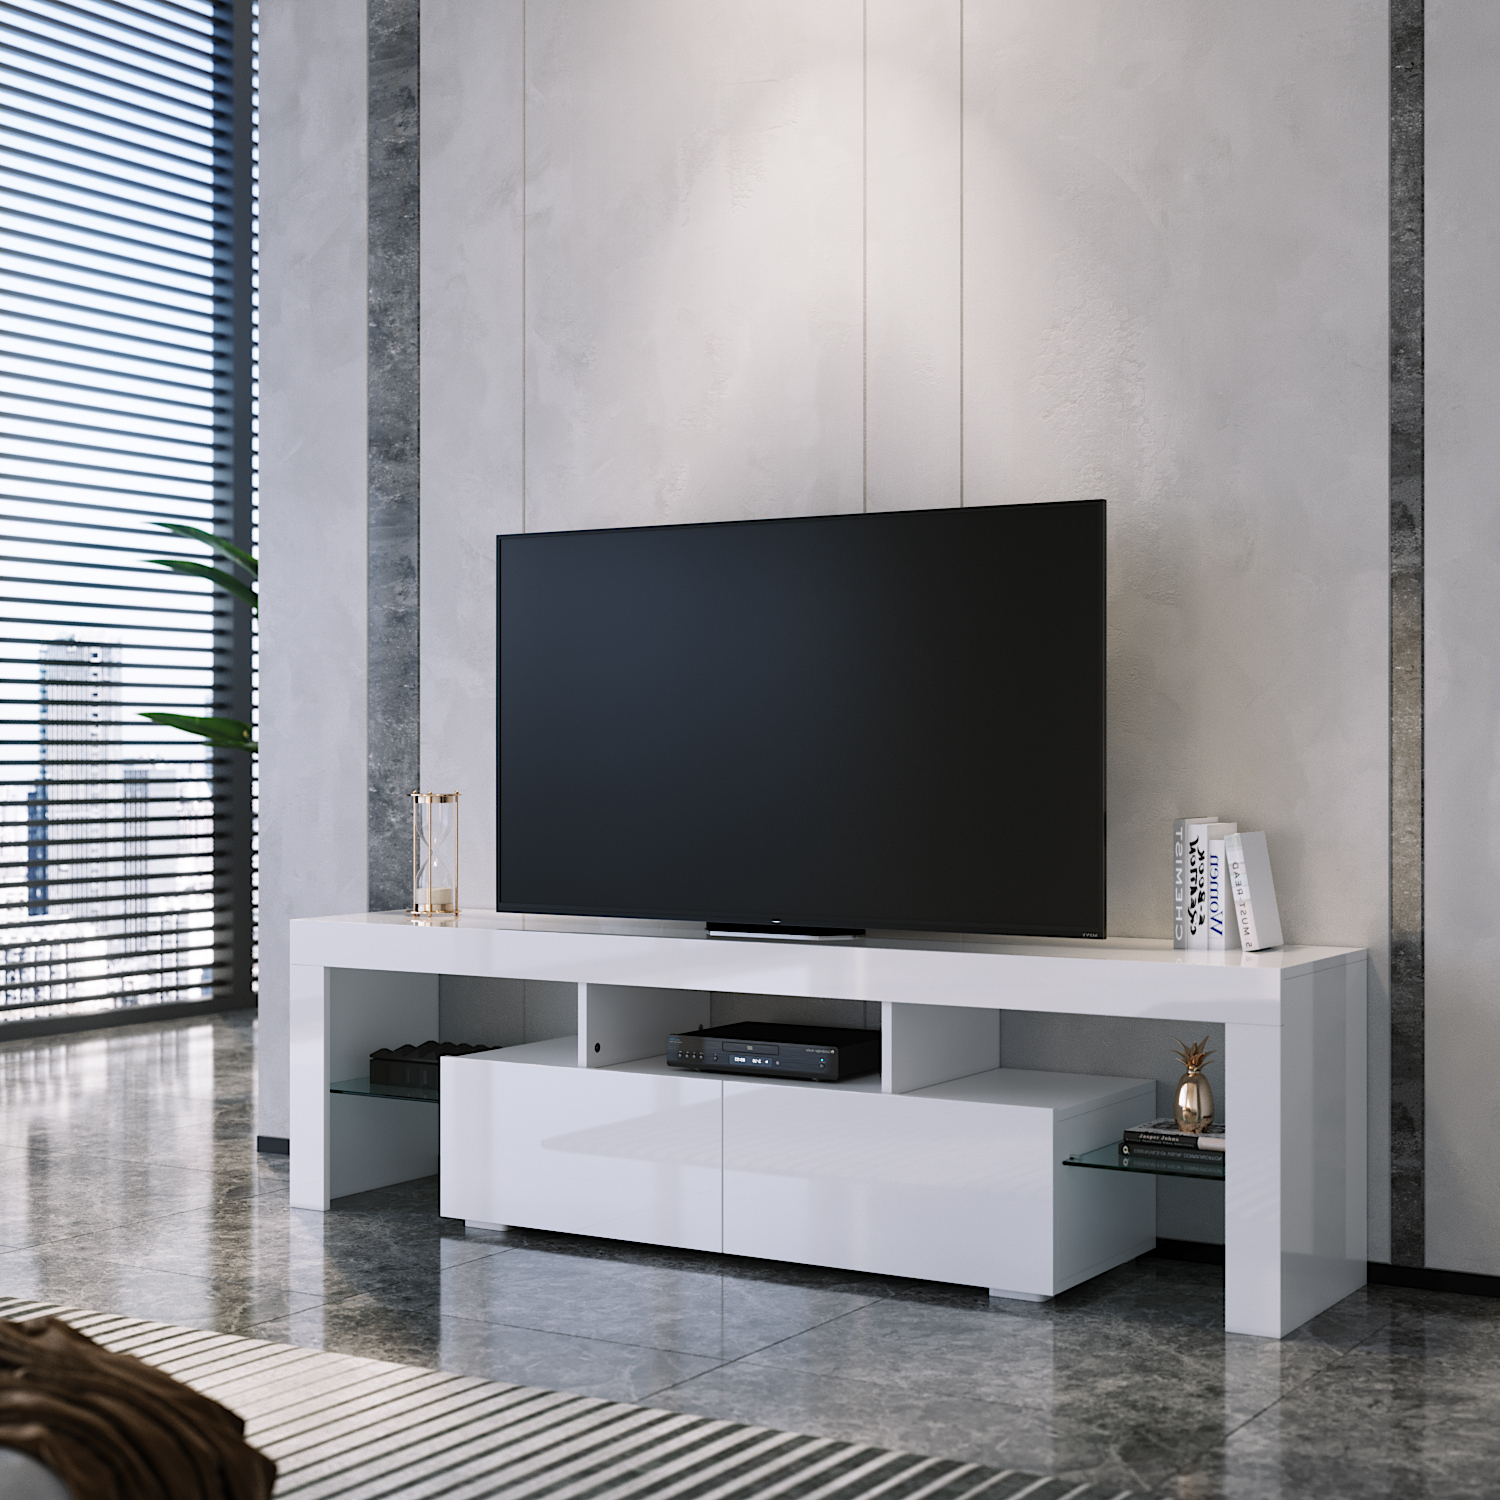 57'' Led Tv Stands With Rgb Led Light And Glass Shelves Intended For Favorite Modern 160cm Tv Unit Stand Matt Body & High Gloss Doors (View 10 of 10)